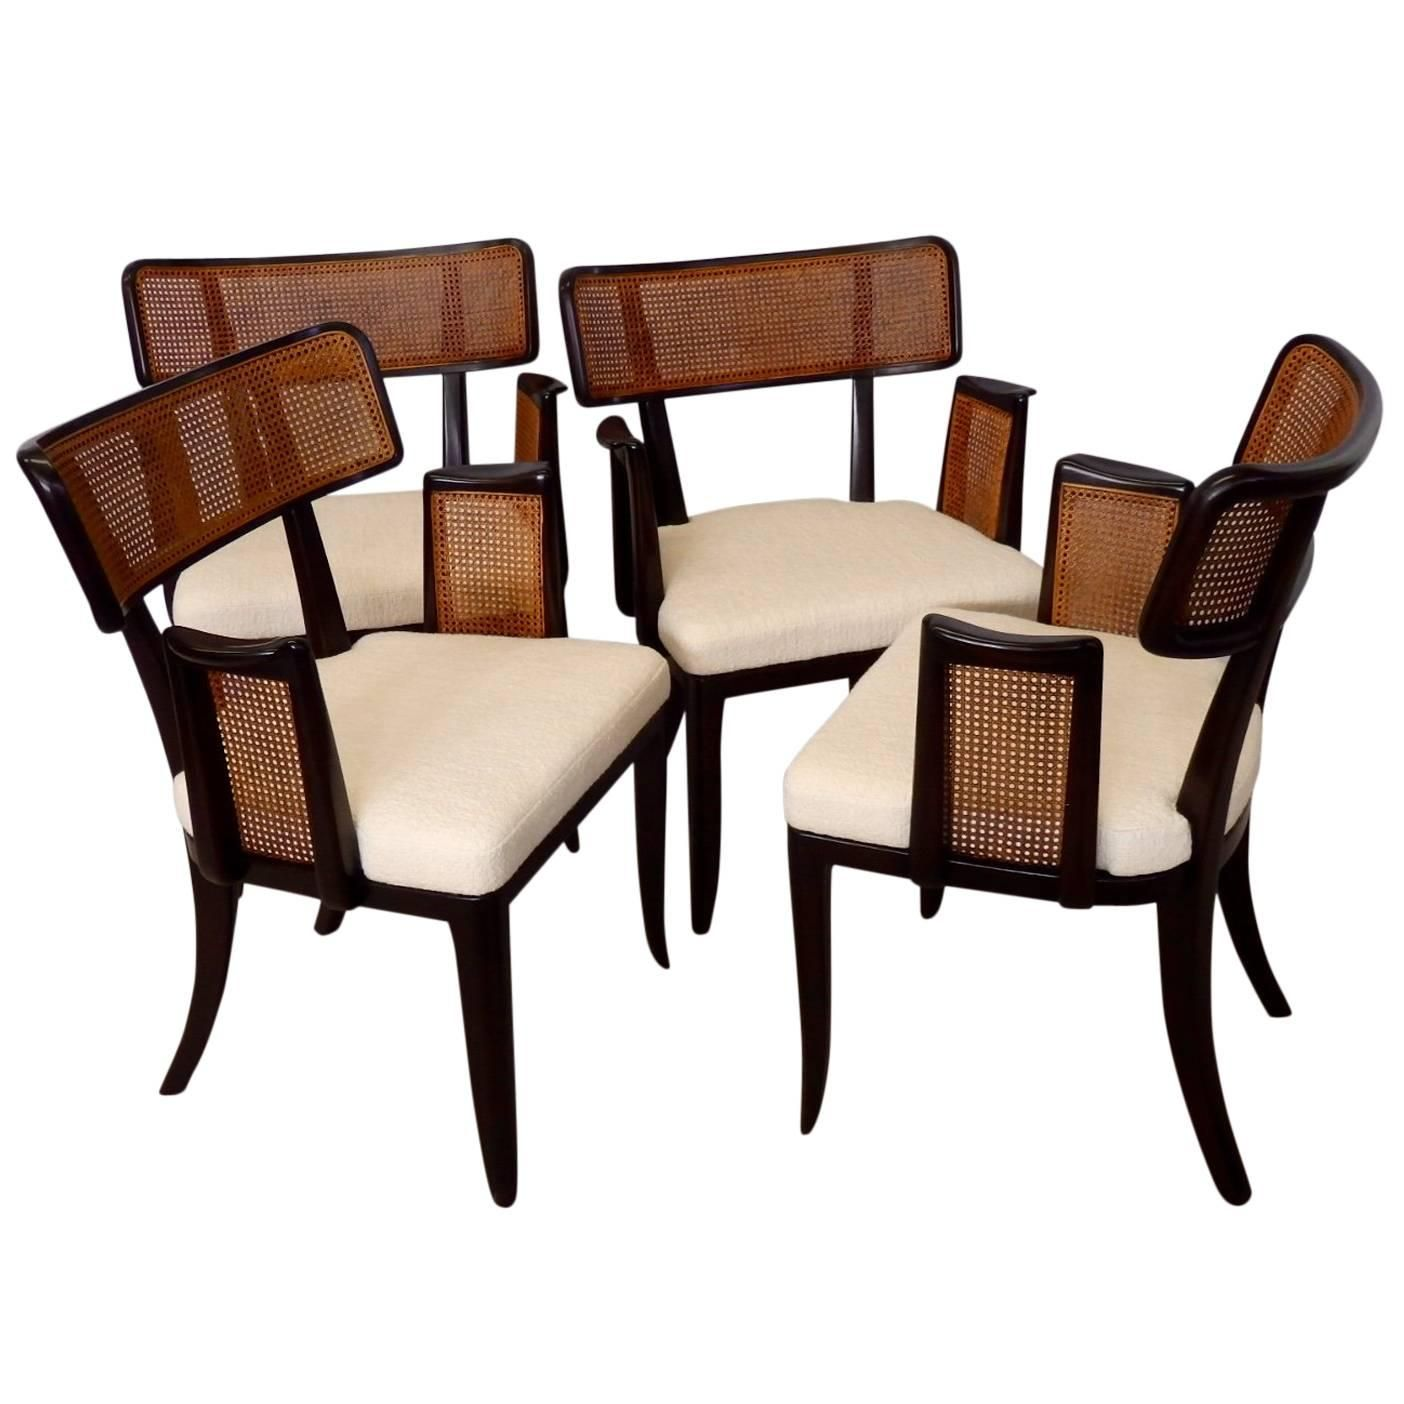 Four Edward Wormley For Dunbar Dining Chairs For Sale At